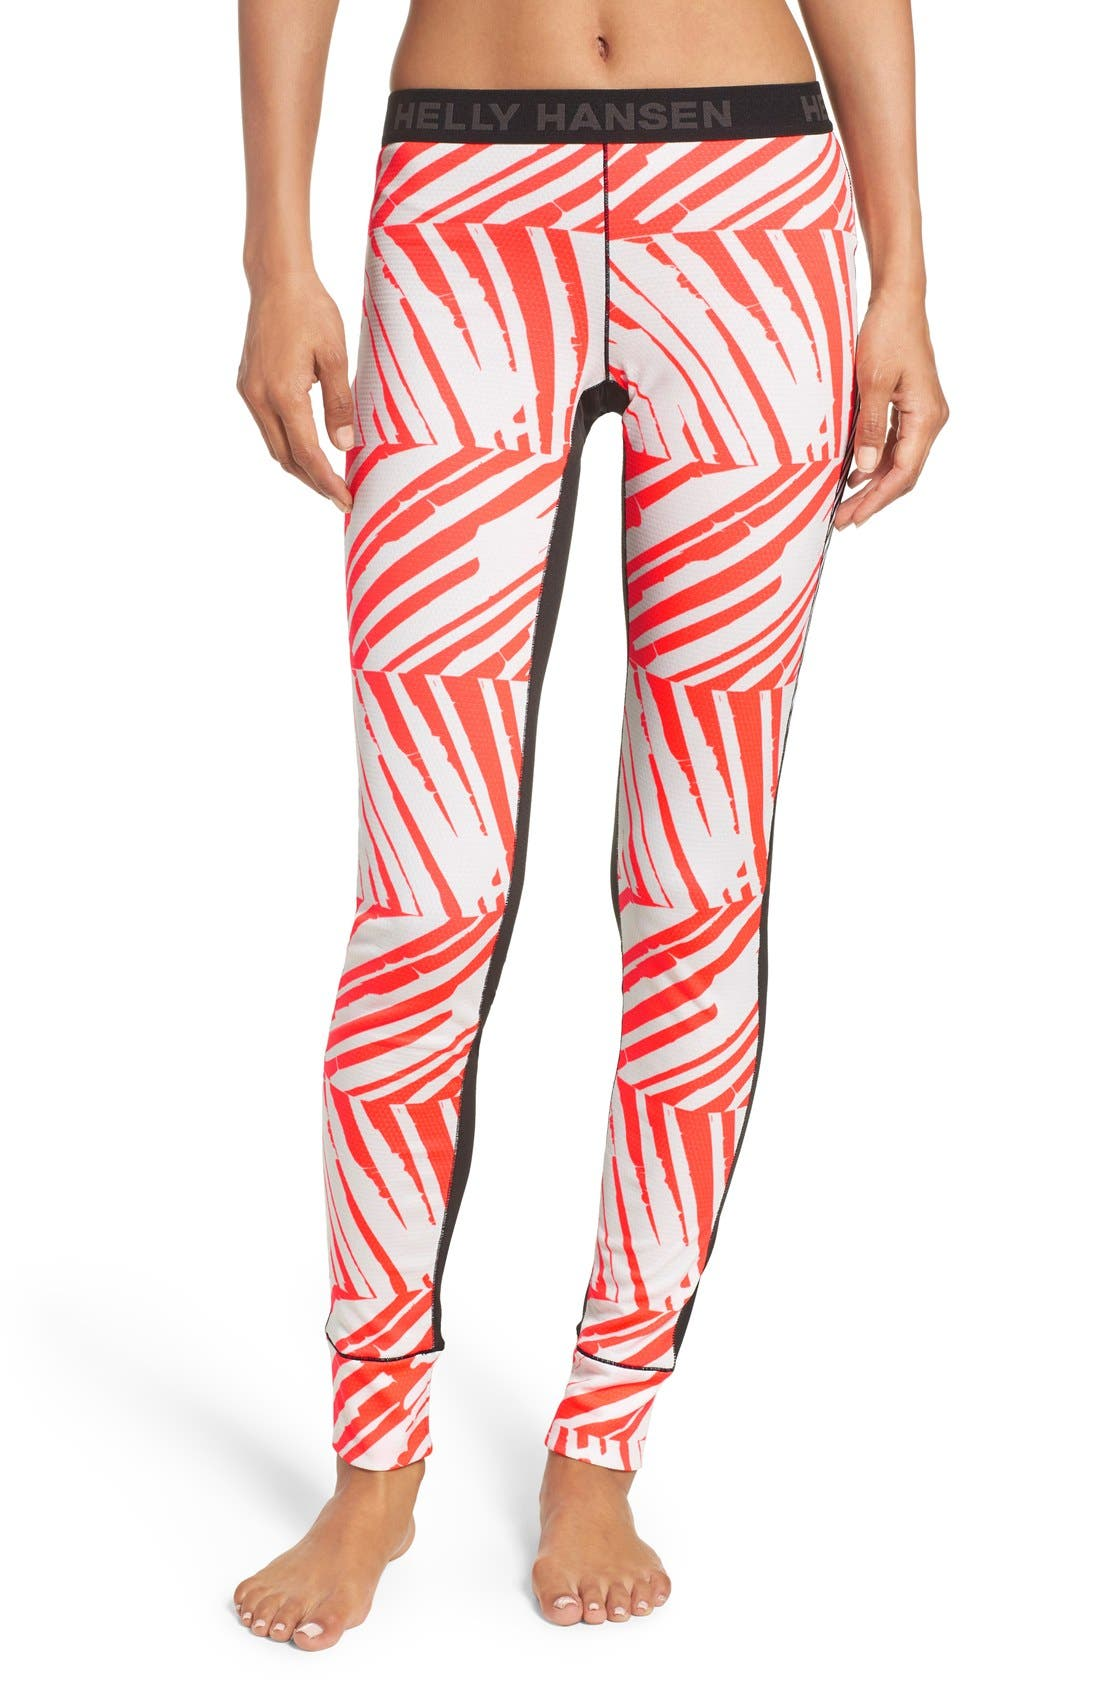 Helly Hansen Graphic Flow Leggings